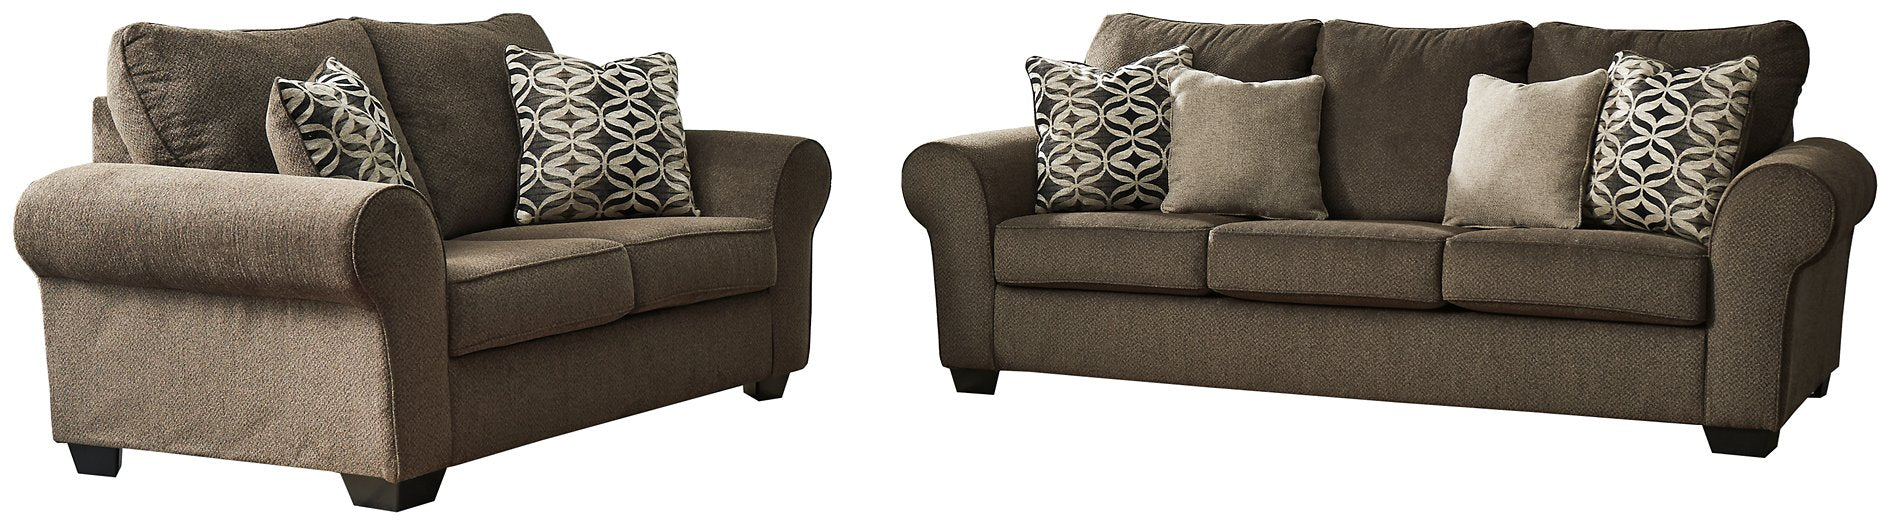 Nesso Benchcraft 2-Piece Living Room Set image